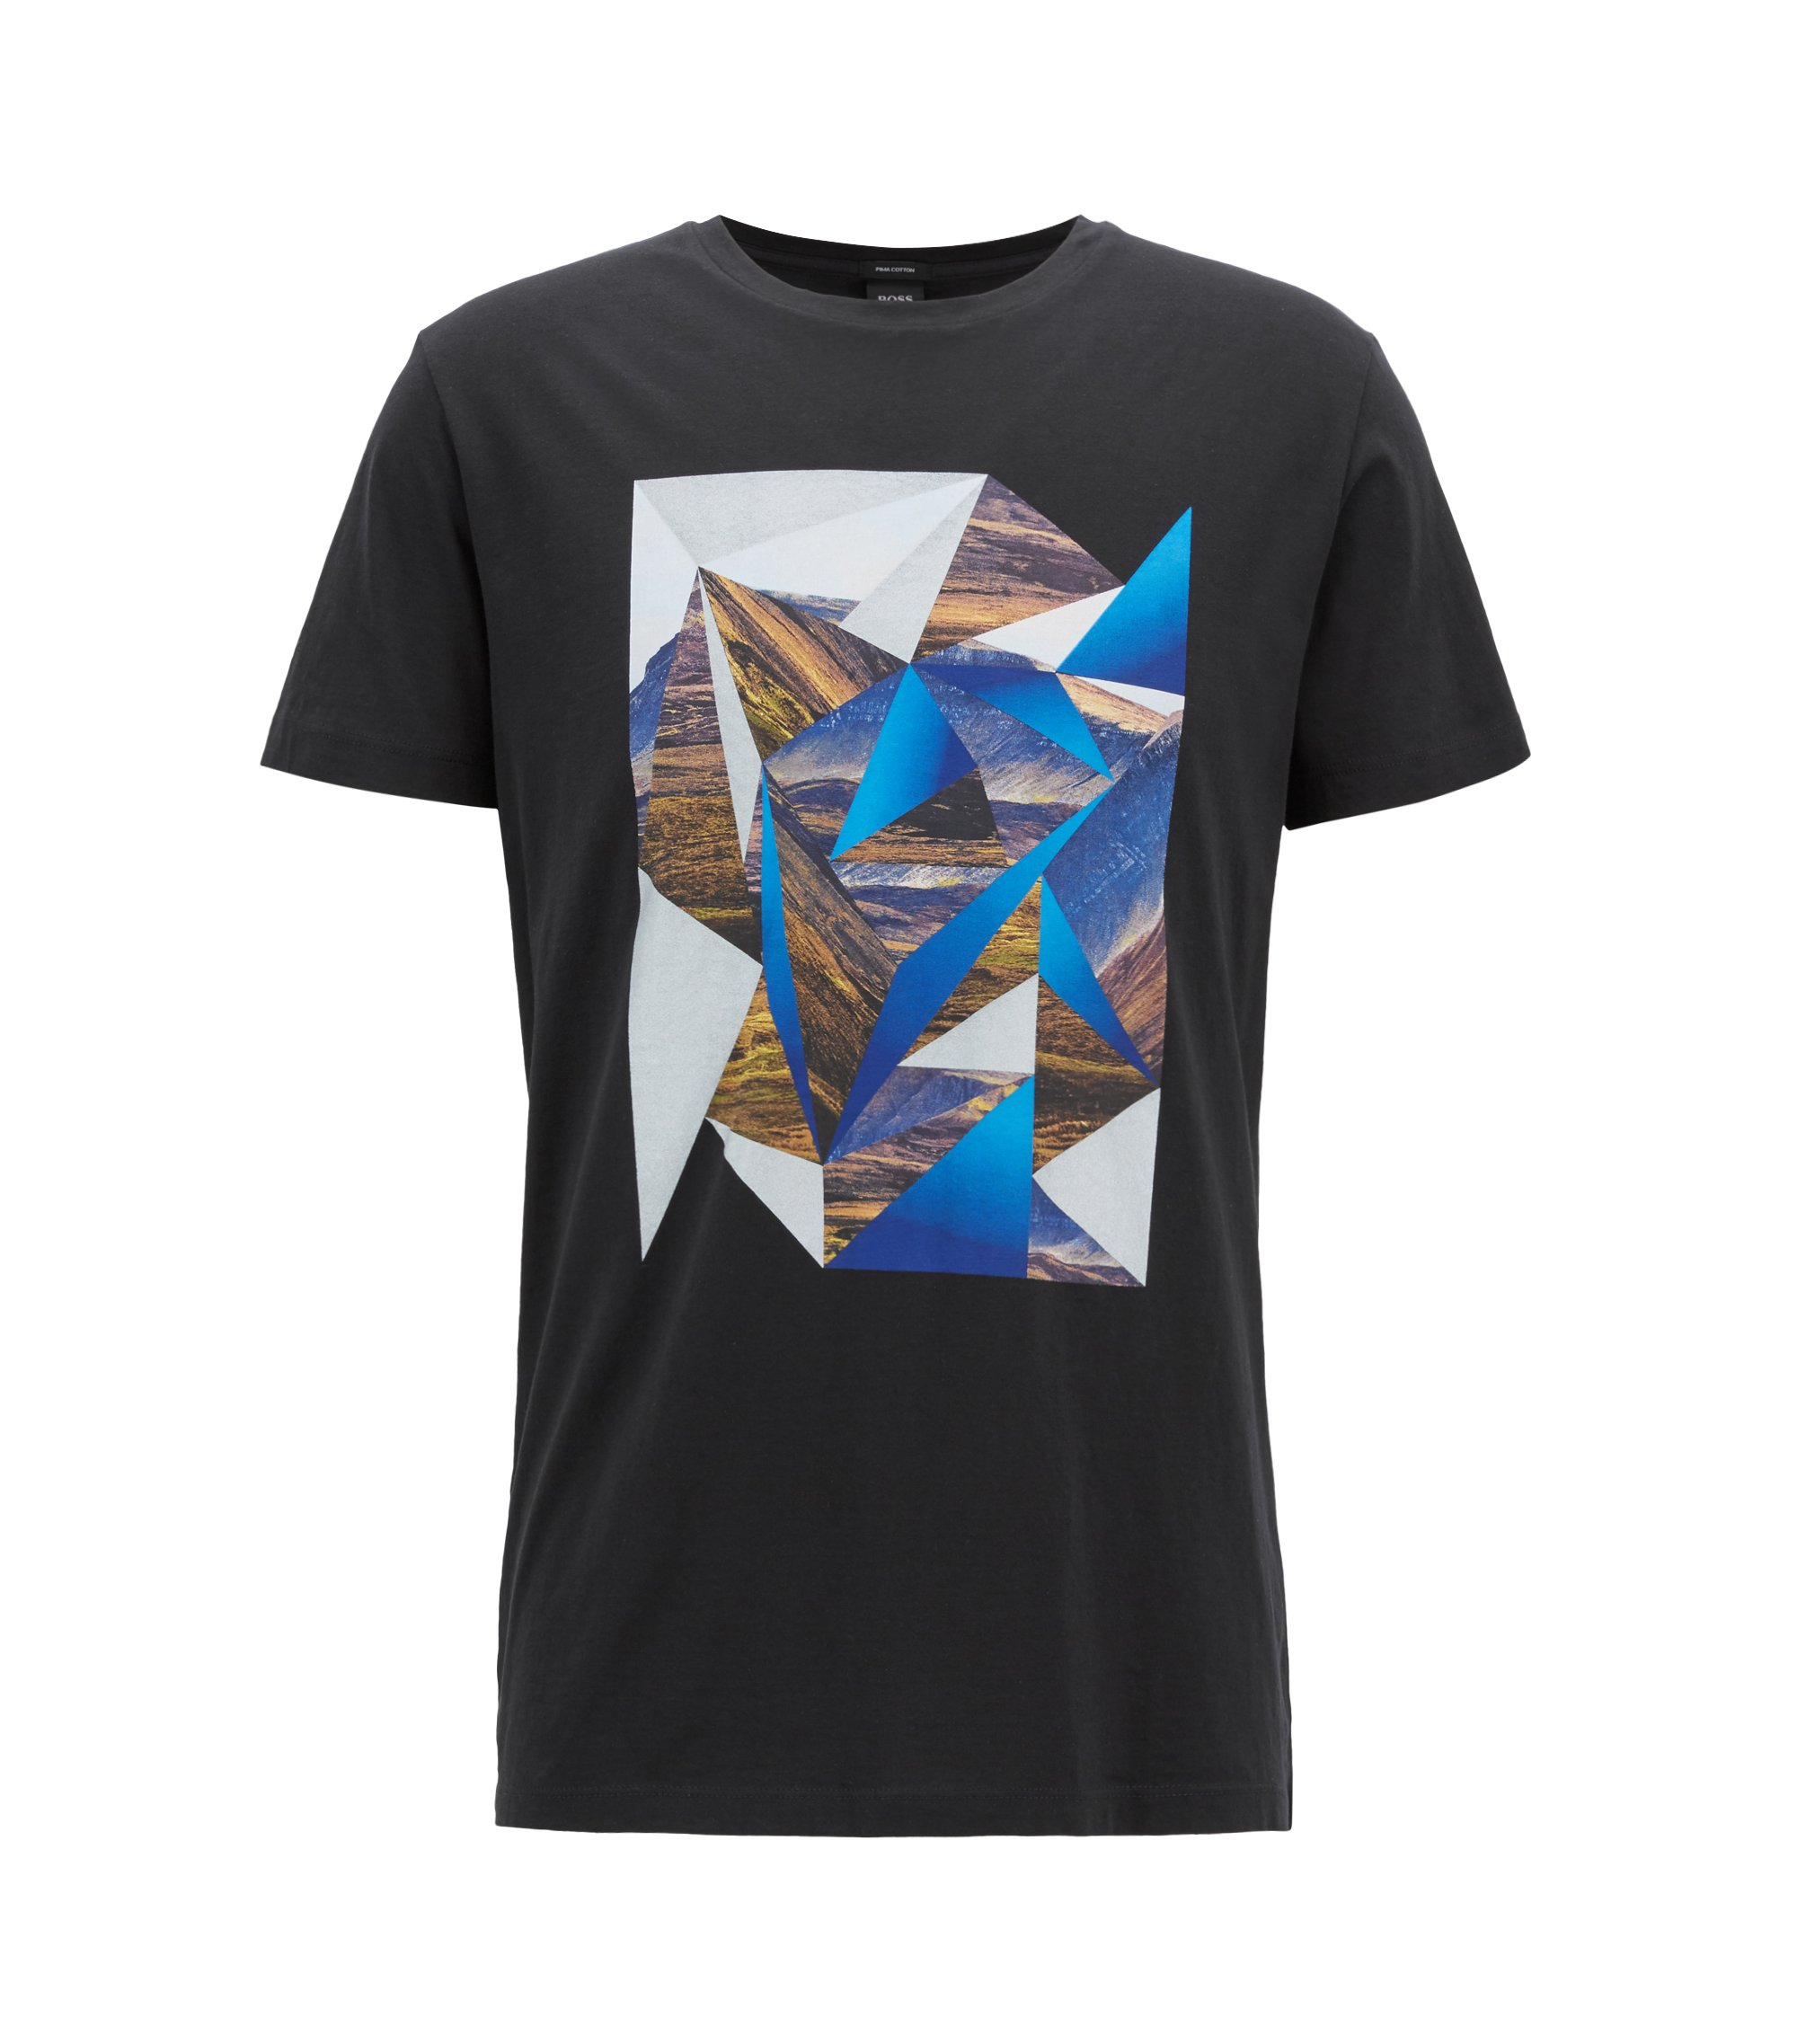 Crew-neck T-shirt in cotton with abstract landscape print, Black